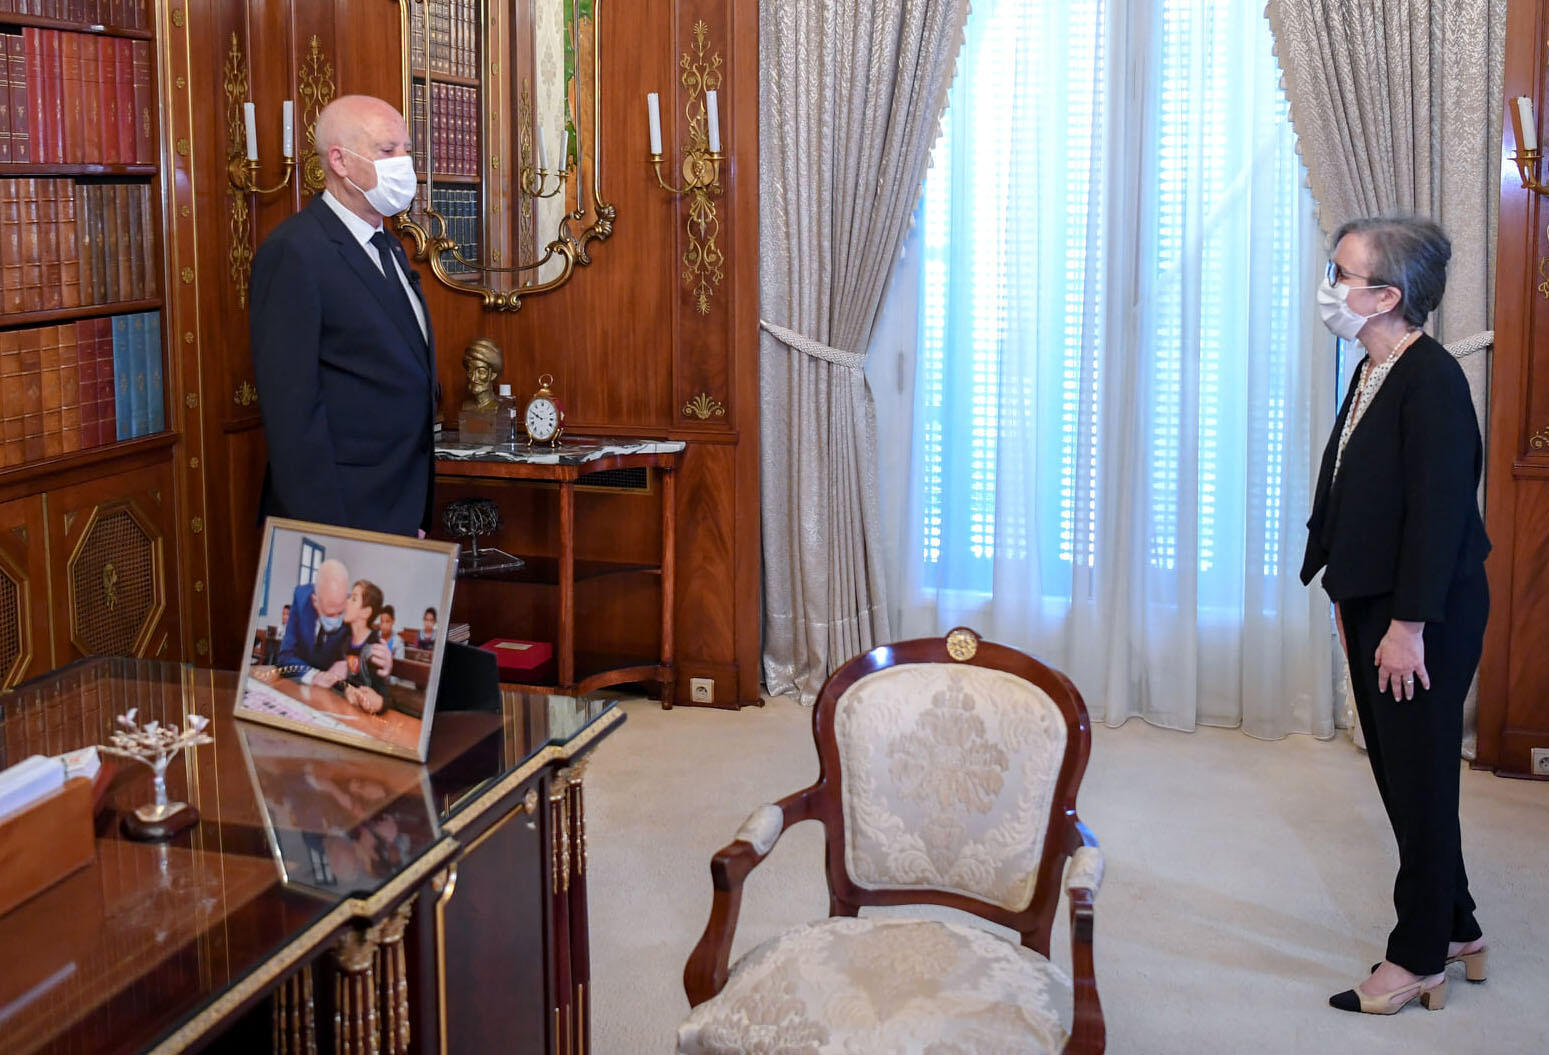 Tunisia's newly named prime minister-designate Najla Bouden, a political unknown with a background in geology, meets with President Kais Saied